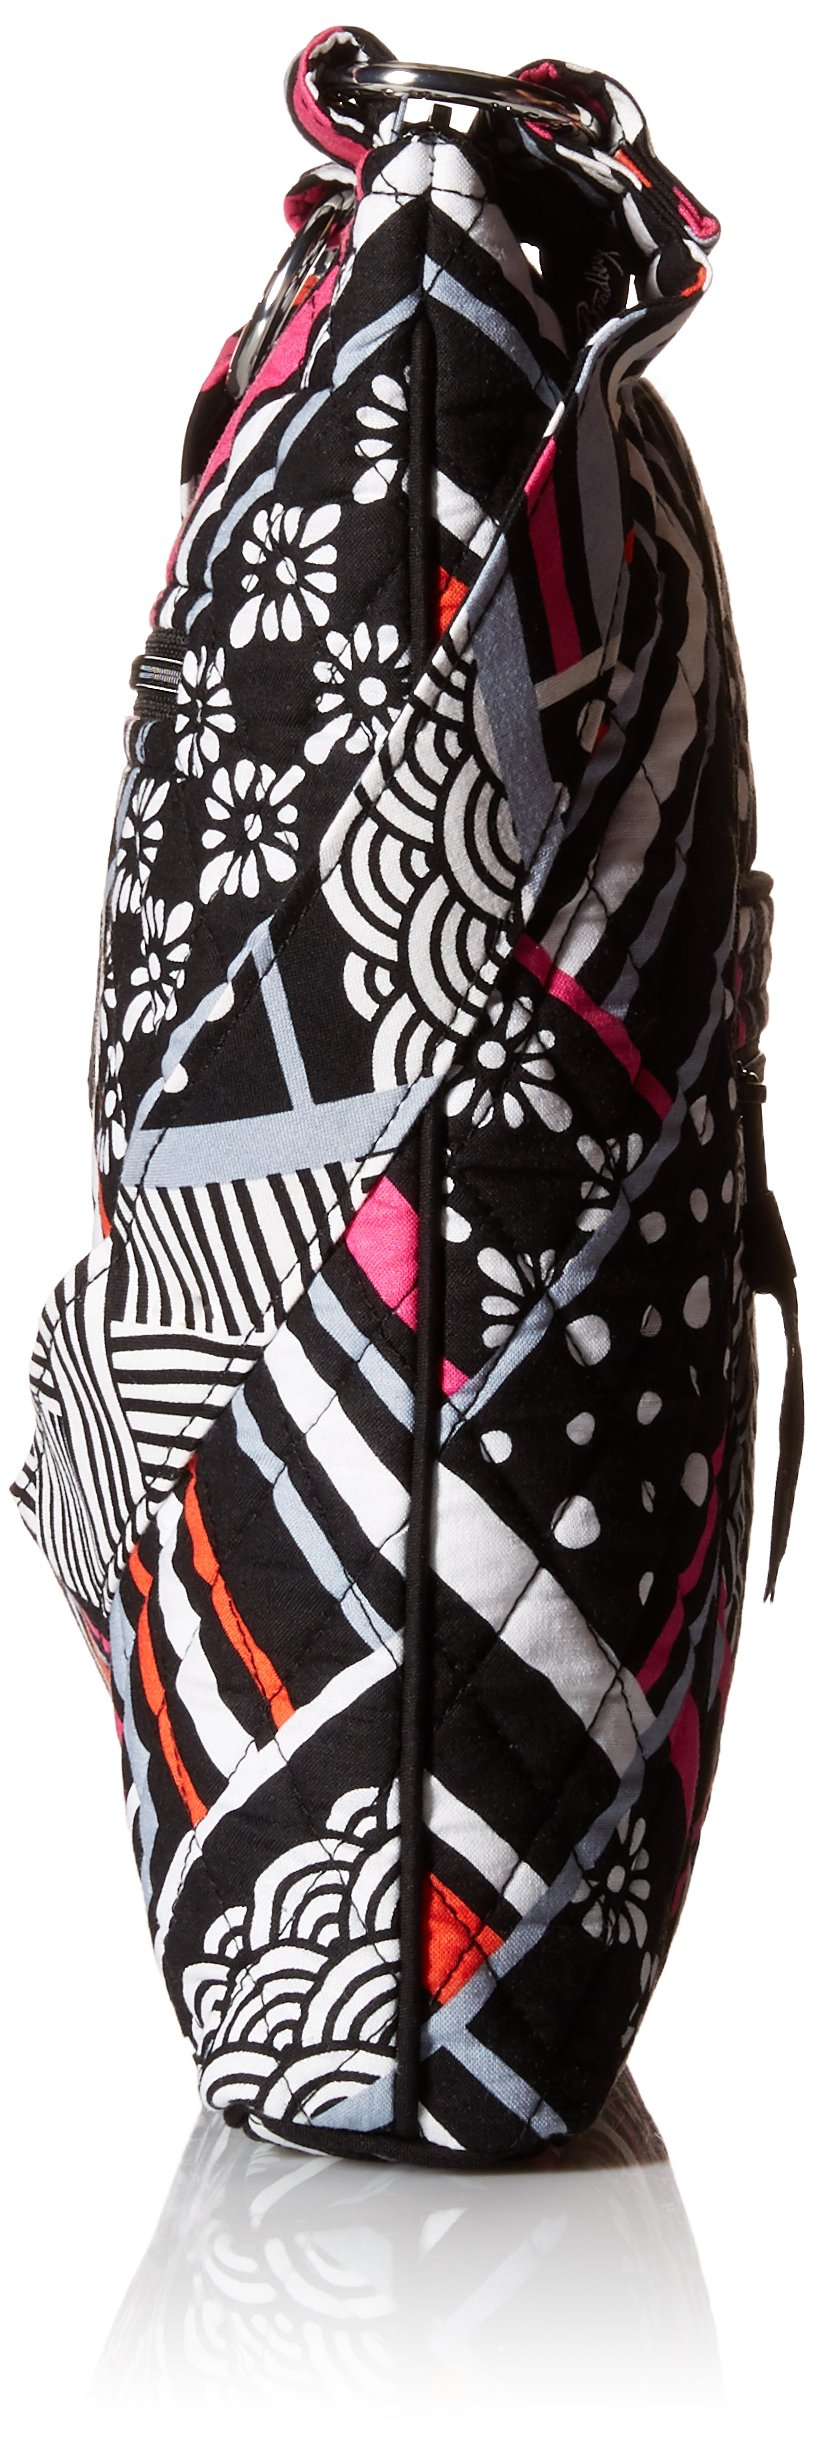 Women's Hipster, Signature Cotton, Northern Stripes by Vera Bradley (Image #3)